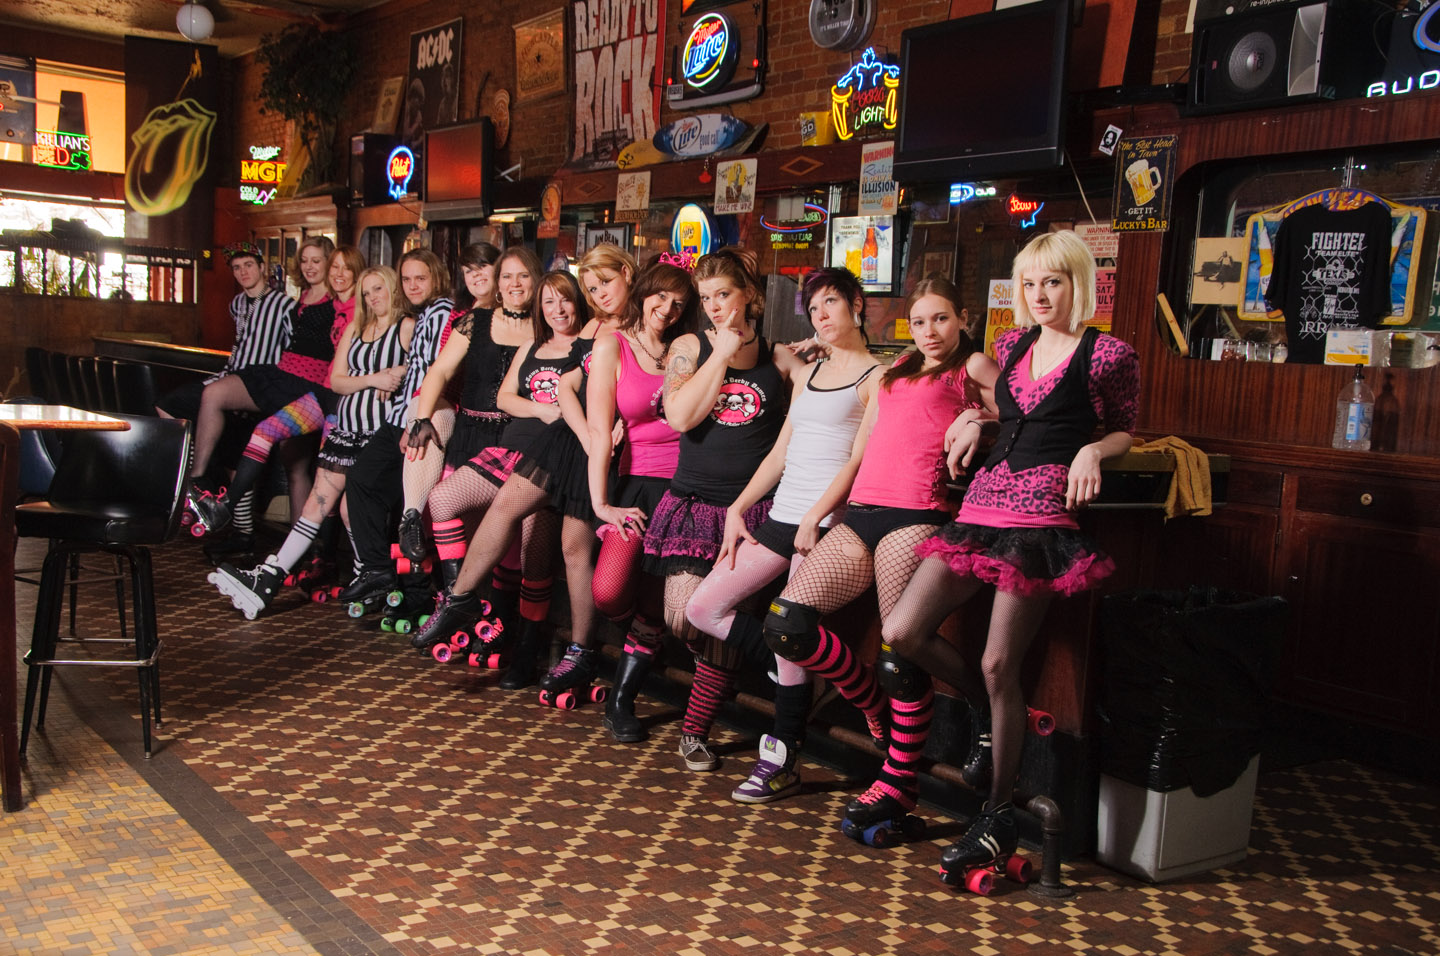 Team photos were created in a bar since the derby location was closed